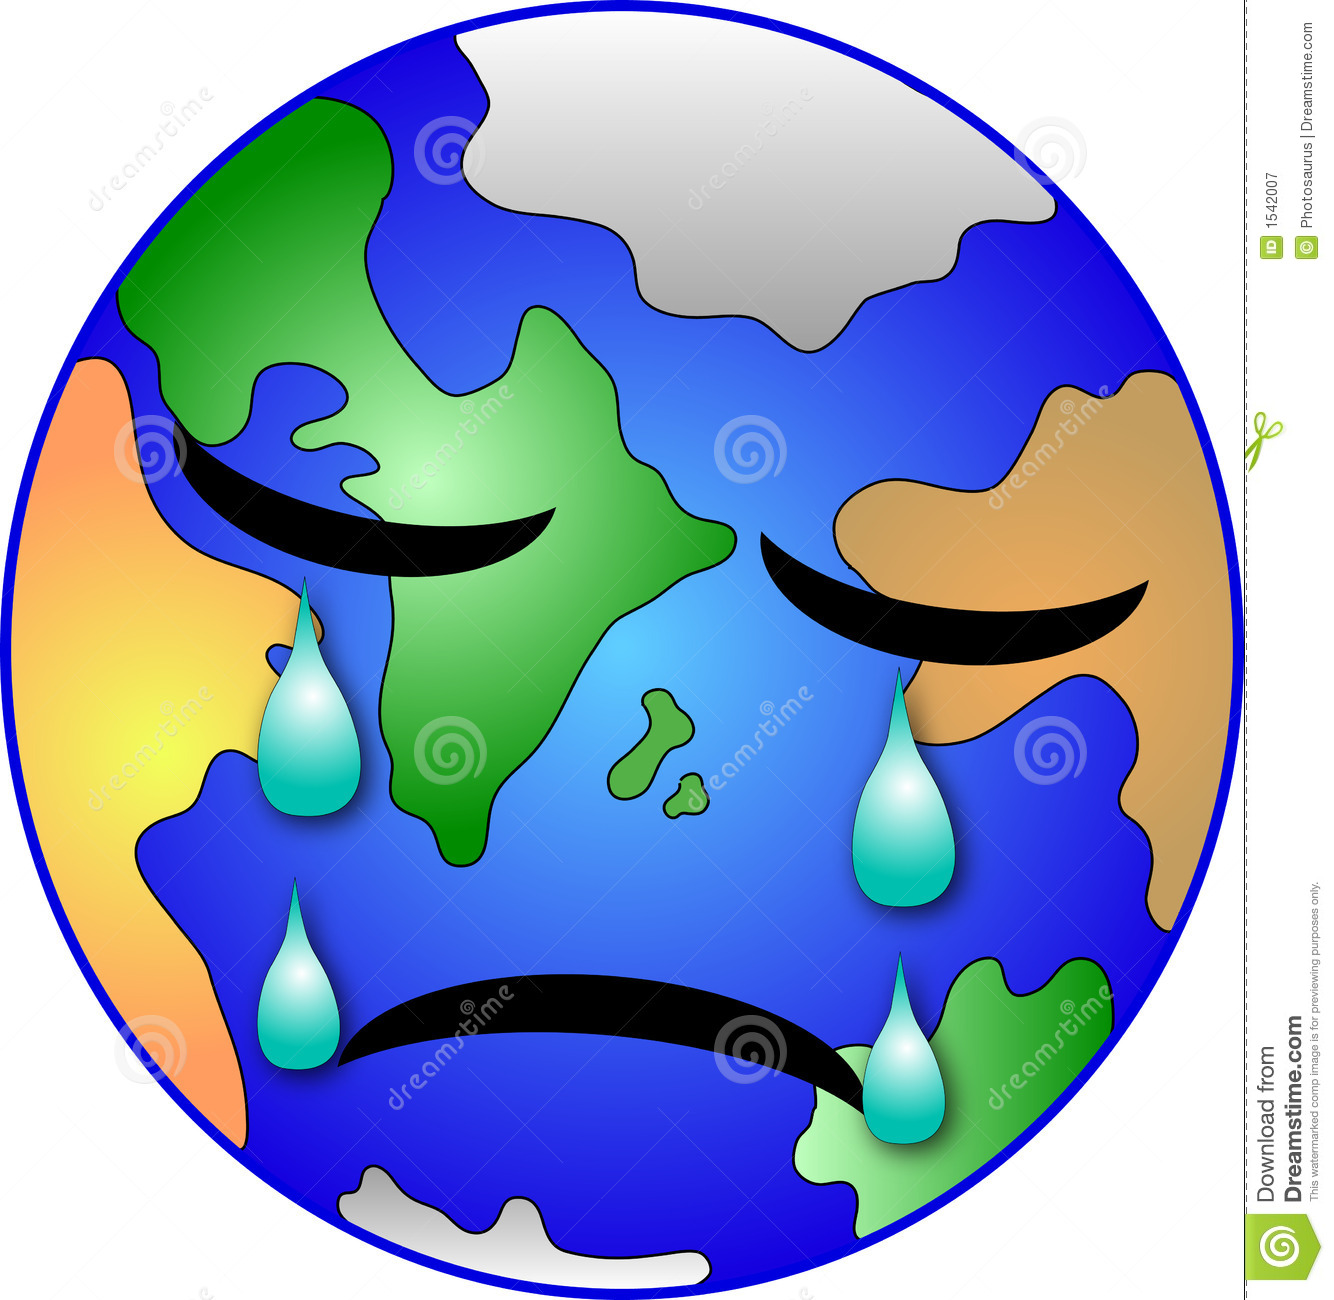 Sad Earth Clipart | Clipart Panda - Free Clipart Images